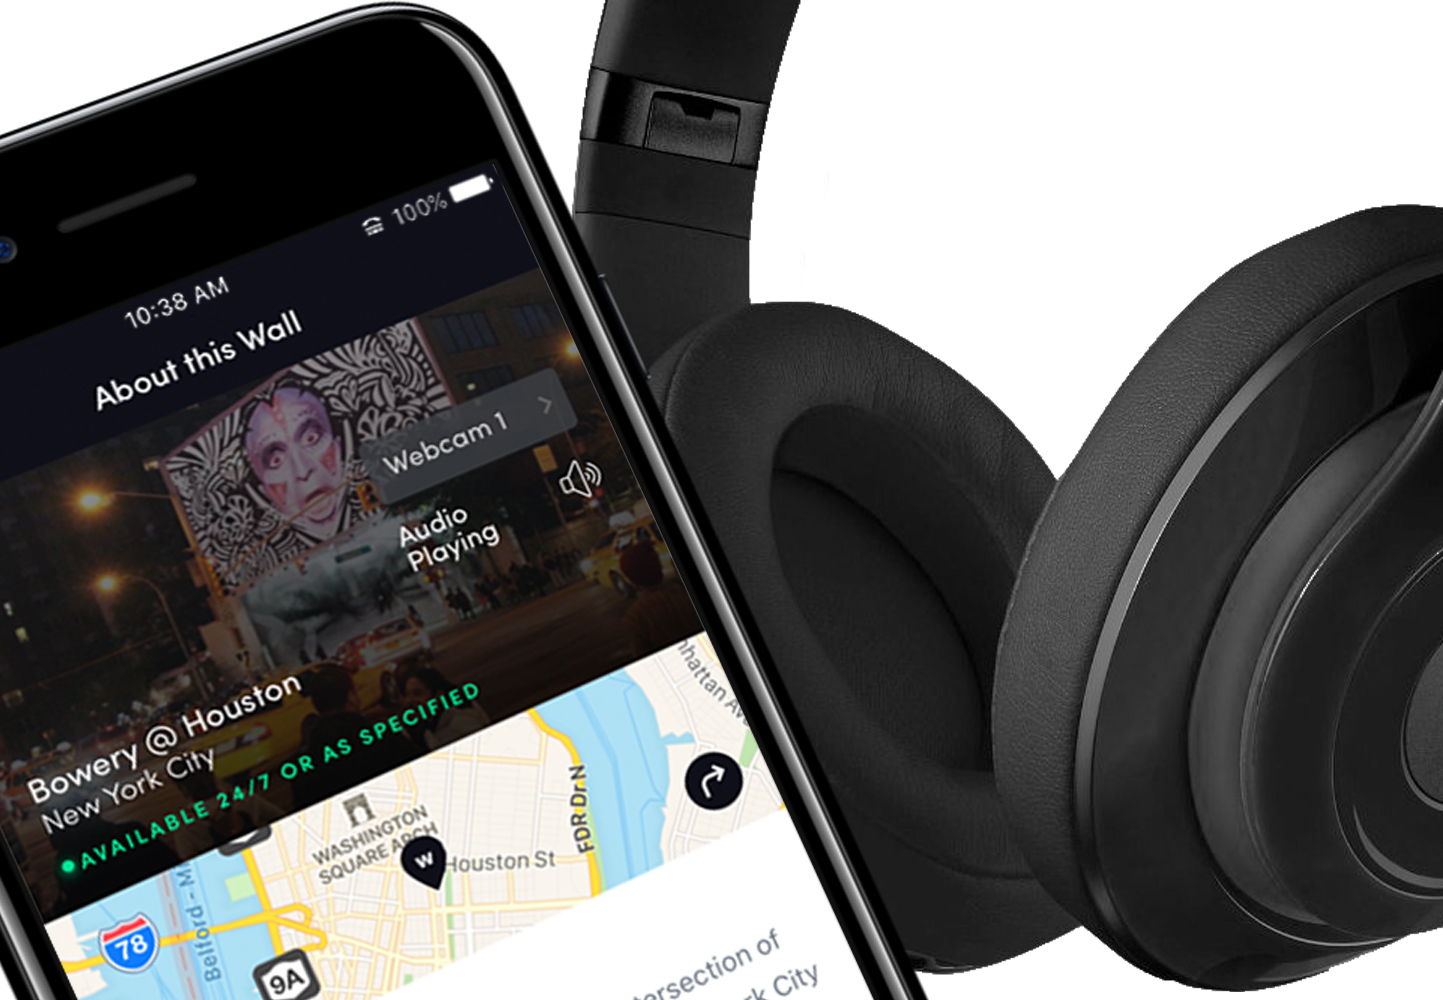 iPhone-7-Plus-with-earbuds.jpg